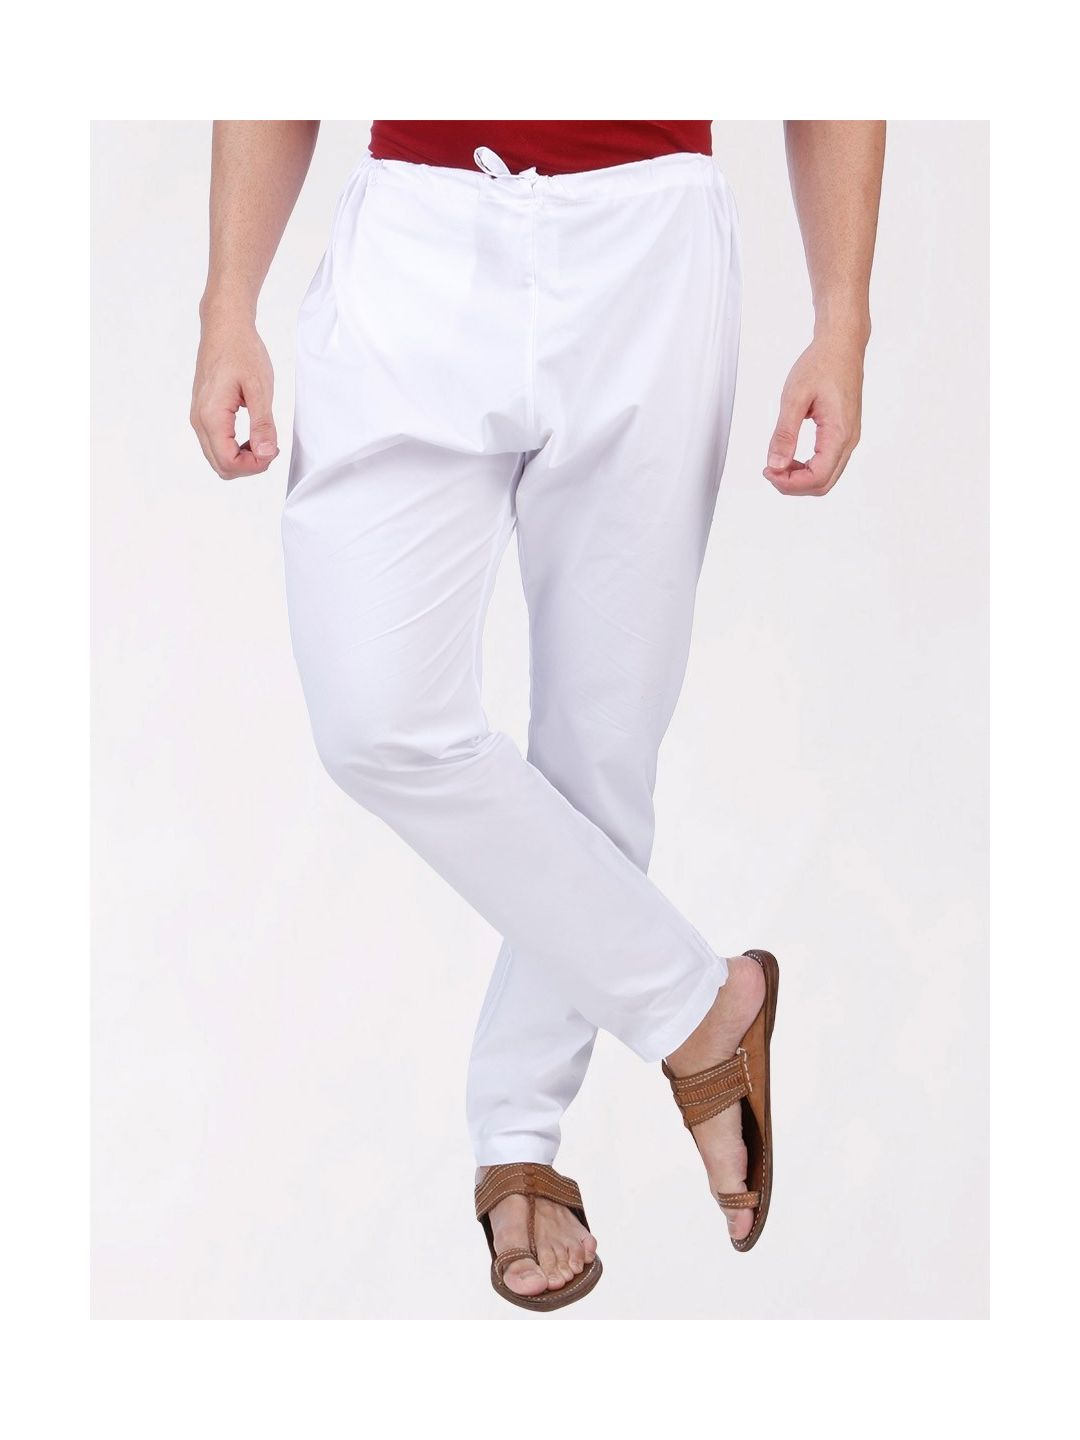 White Cotton Men's Chudidar